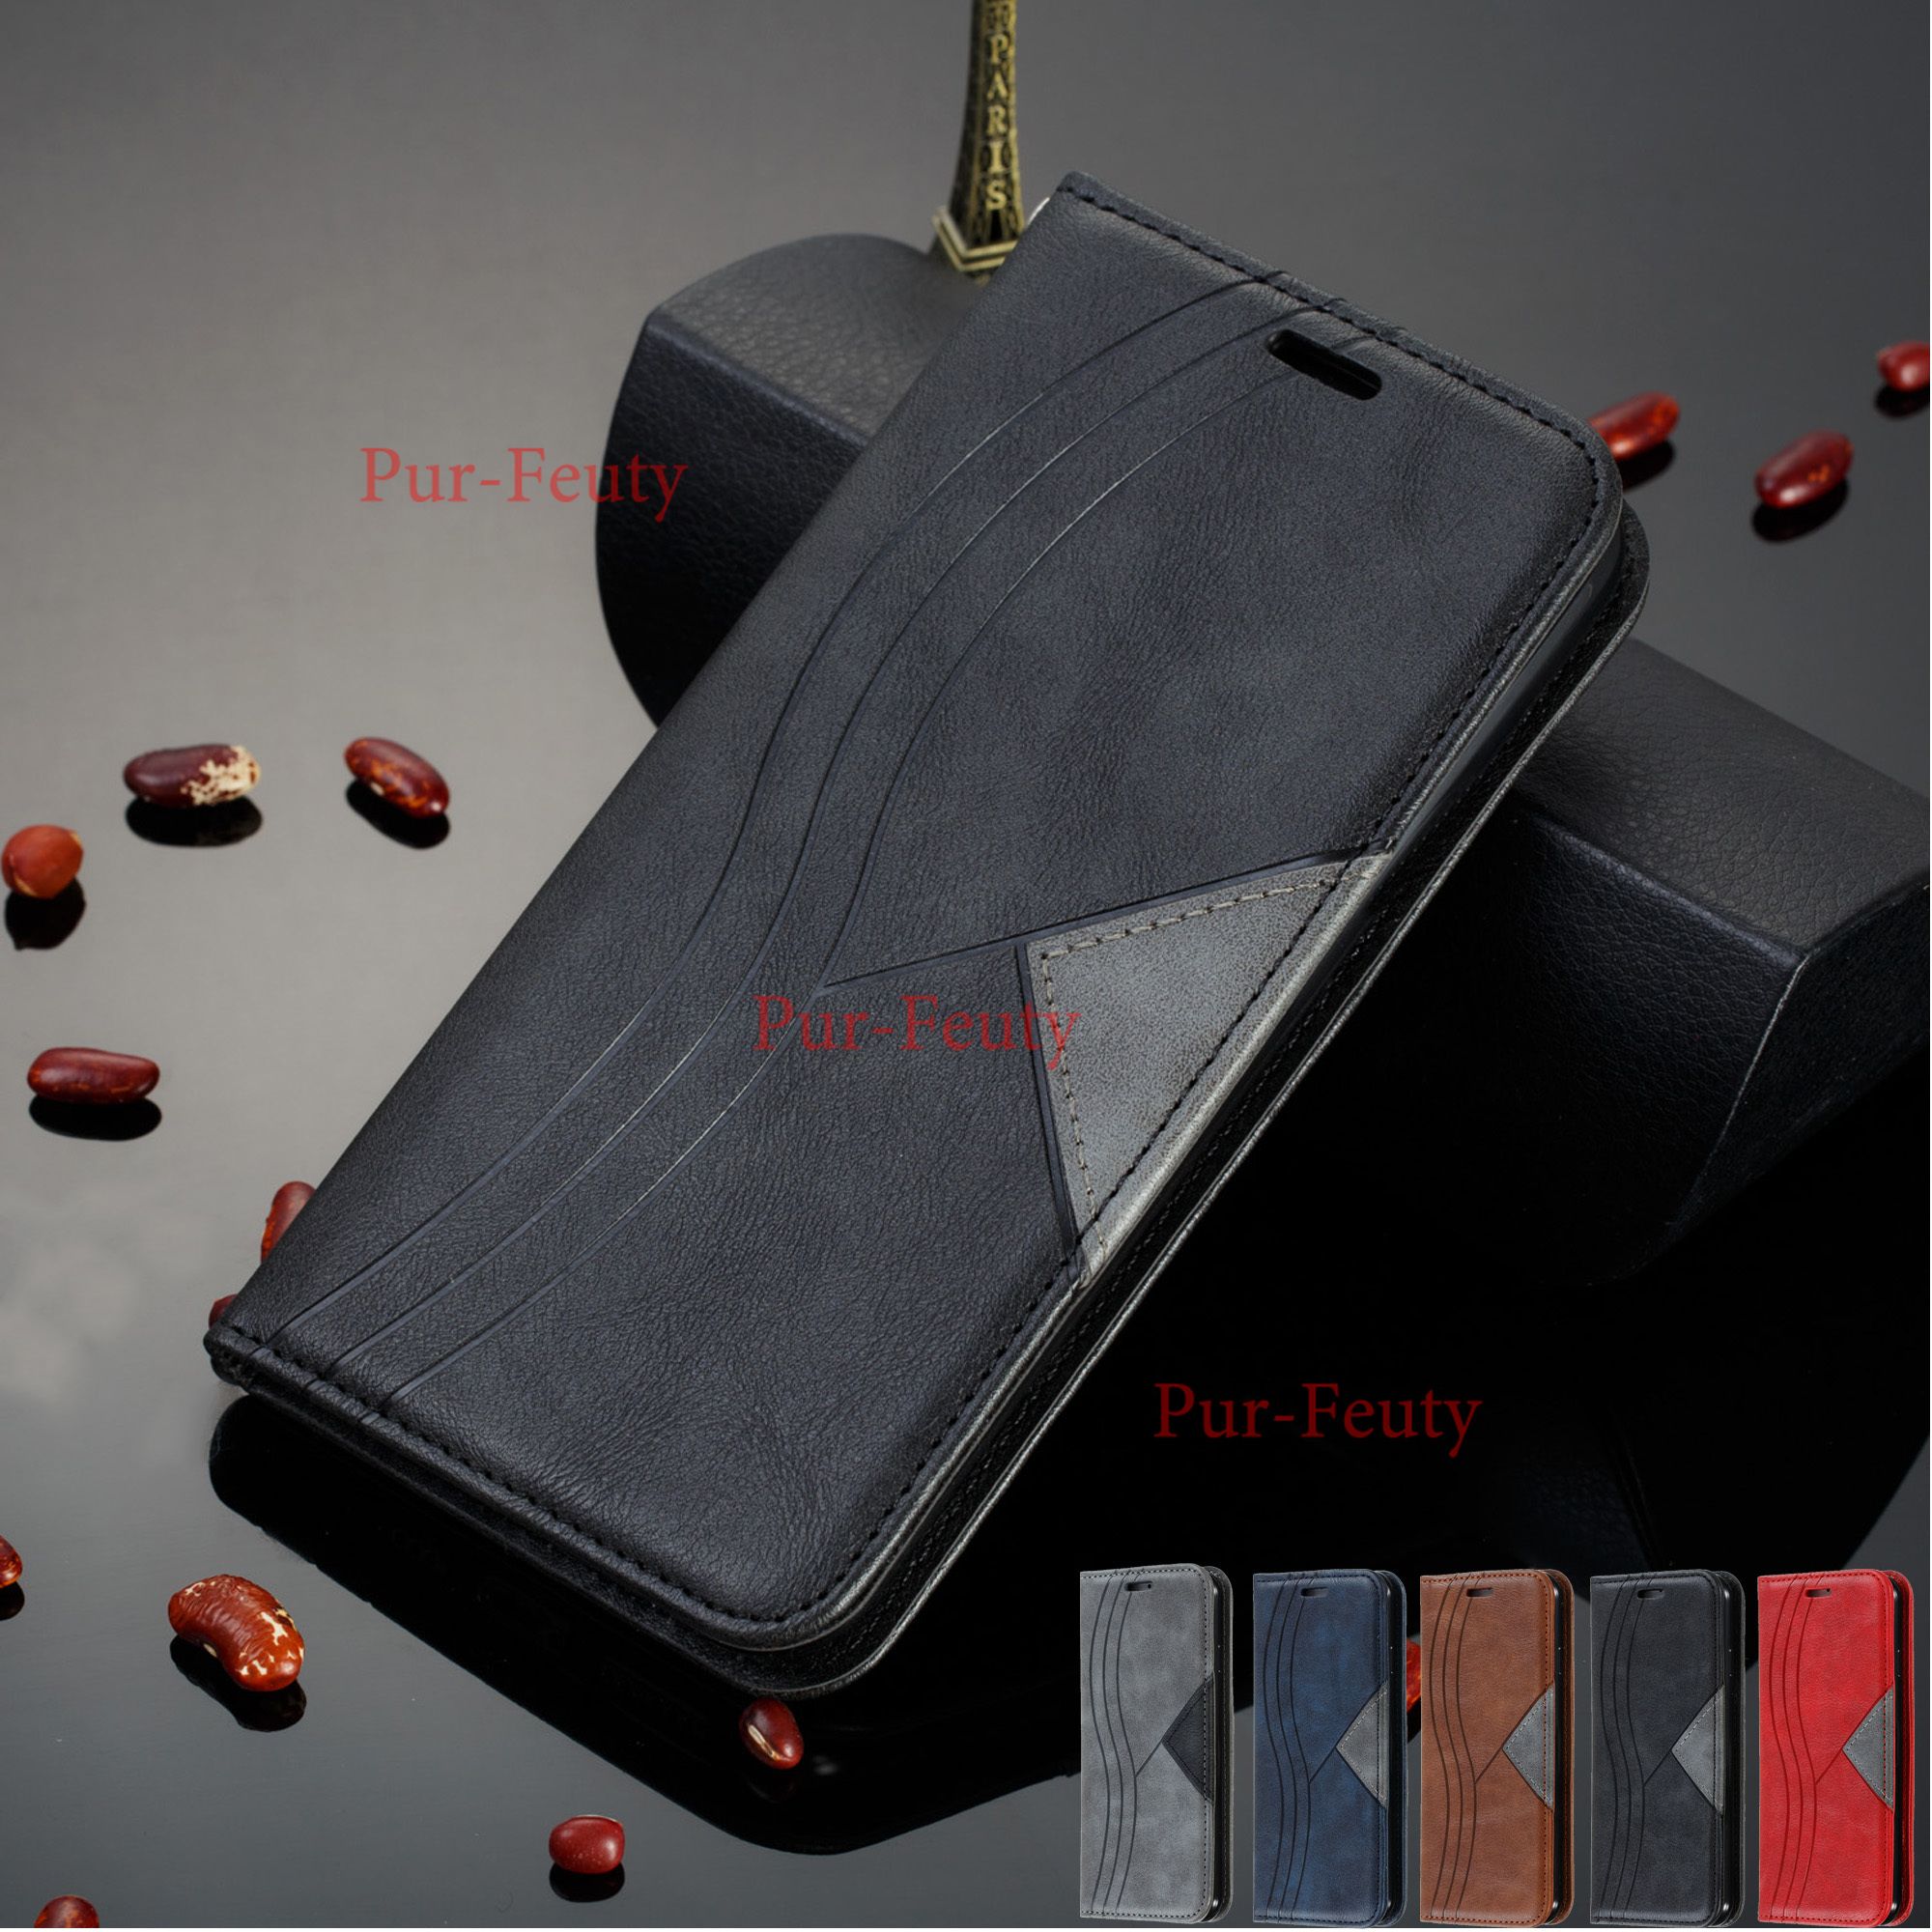 for funda <font><b>samsung</b></font> <font><b>A50</b></font> A 50 <font><b>A505F</b></font> A505FD protect Leather wallet case for <font><b>samsung</b></font> <font><b>galaxy</b></font> A51 A 51 SM-A515F A515 A515F phone cover image